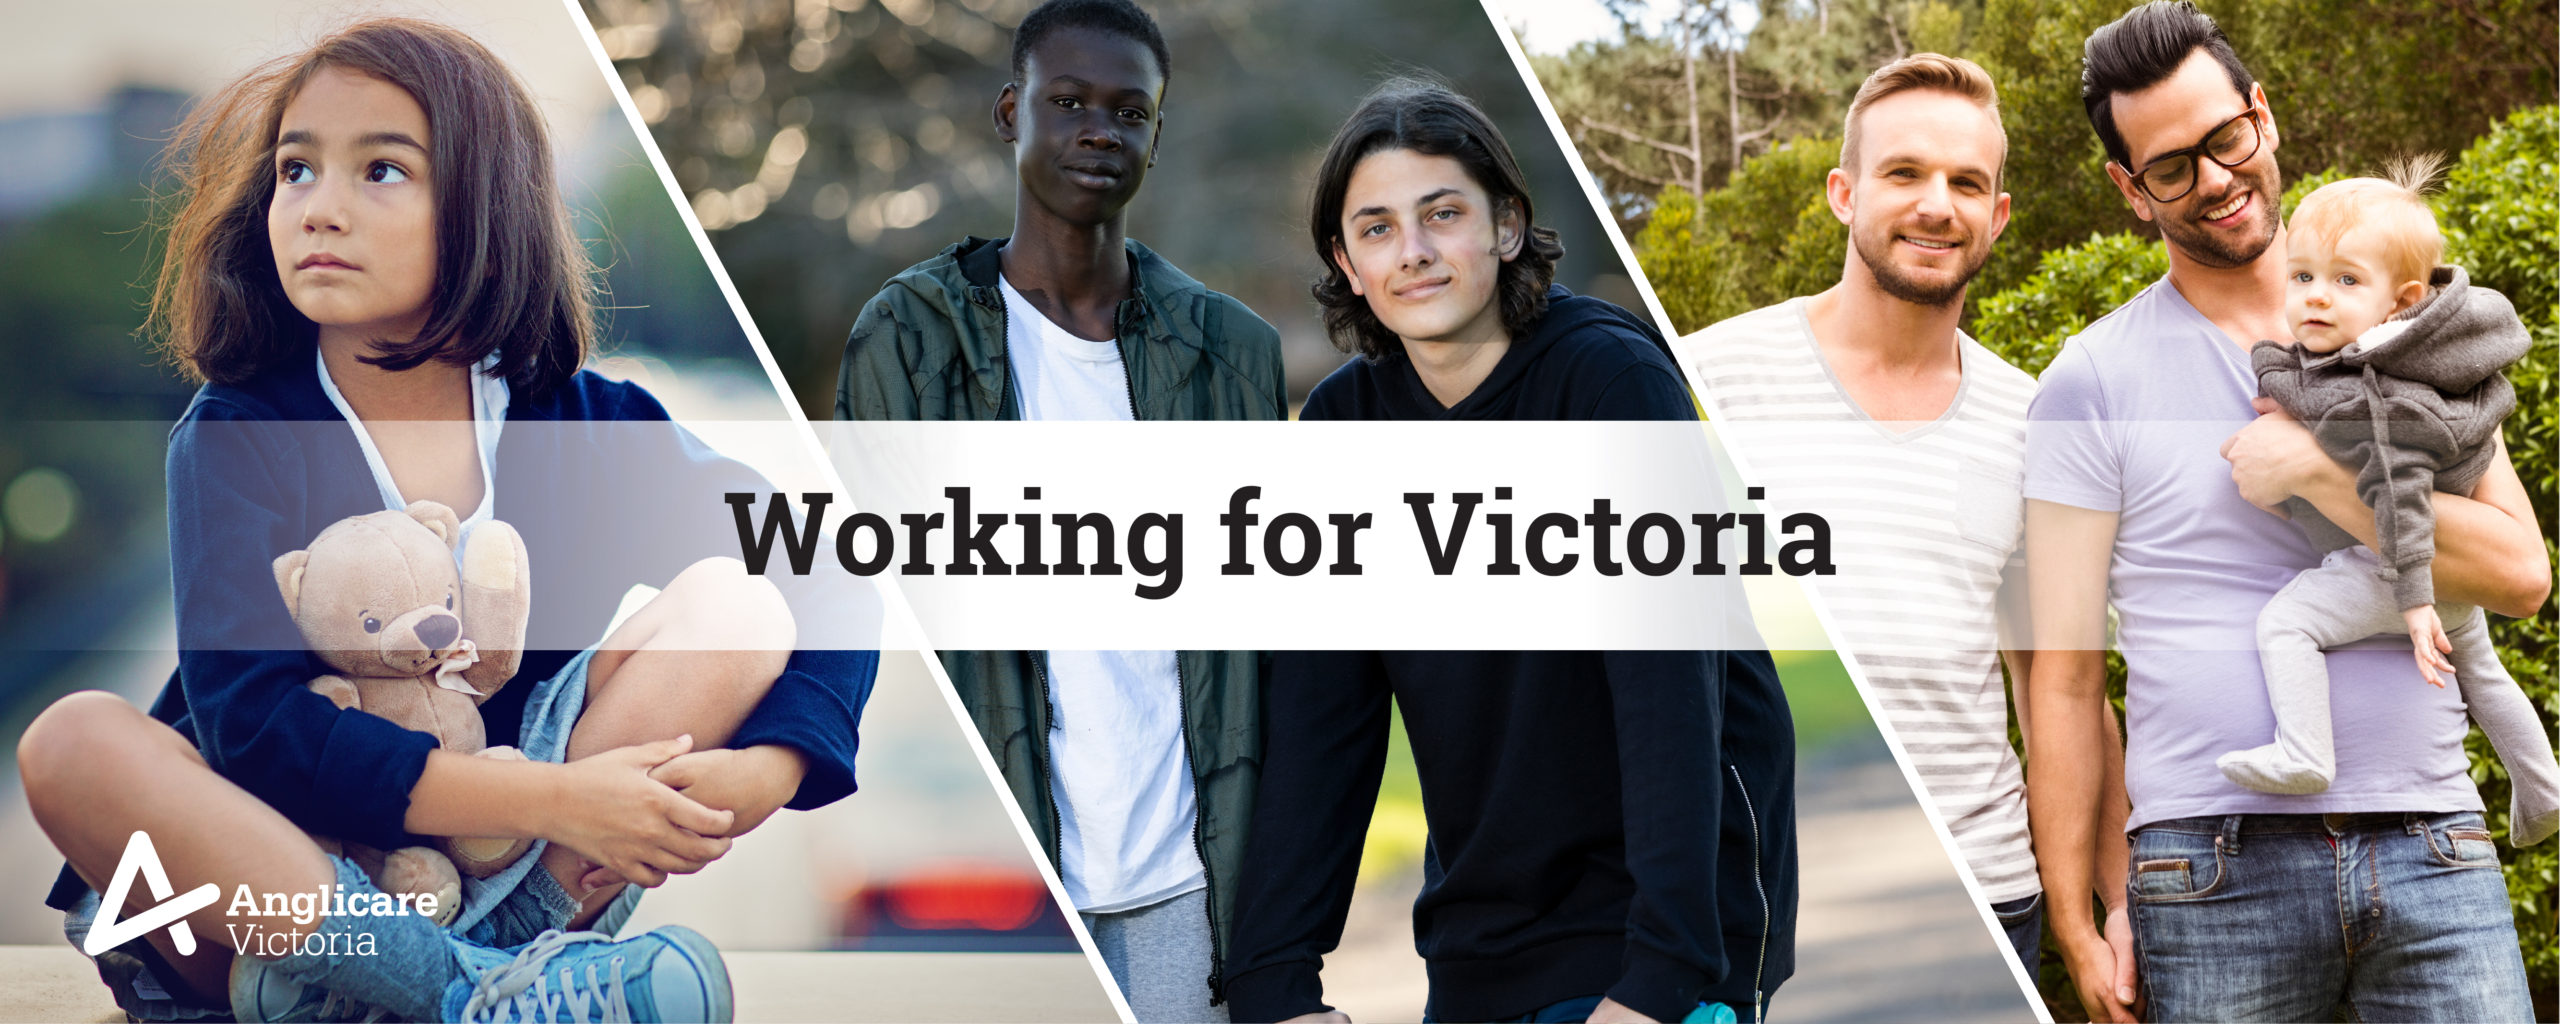 Working for Victoria Initiative